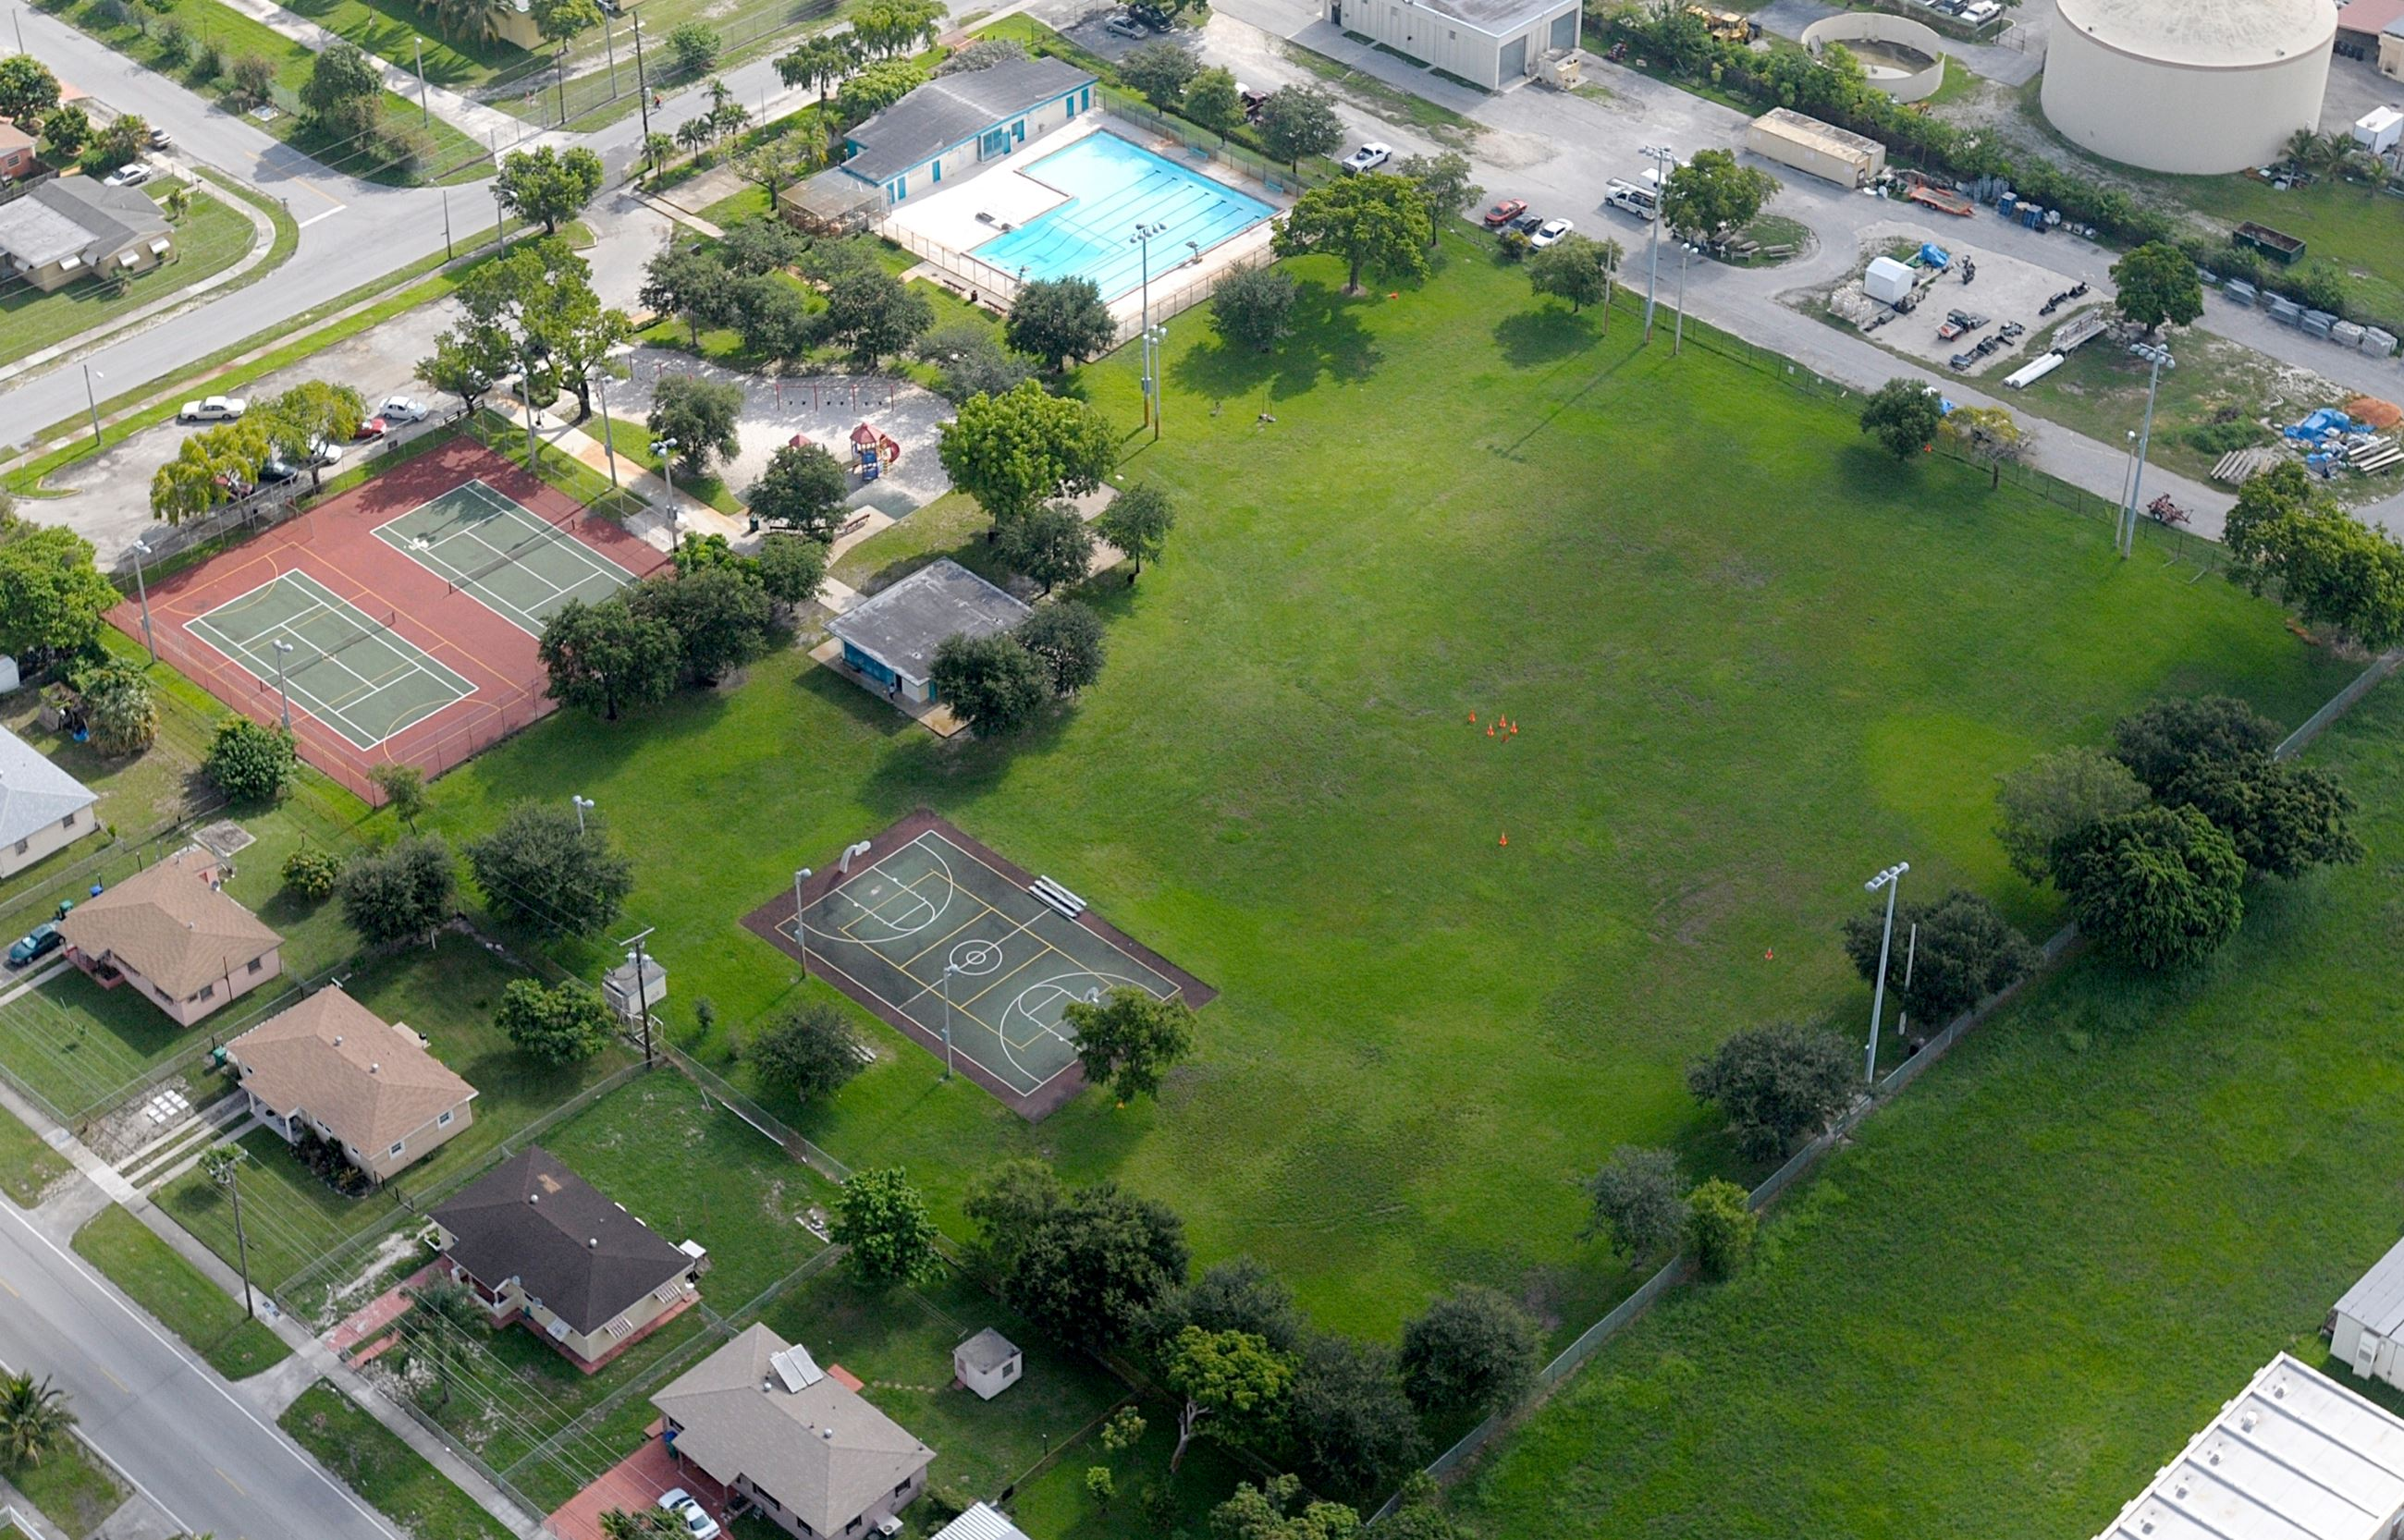 Myrtle Grove Aerial View